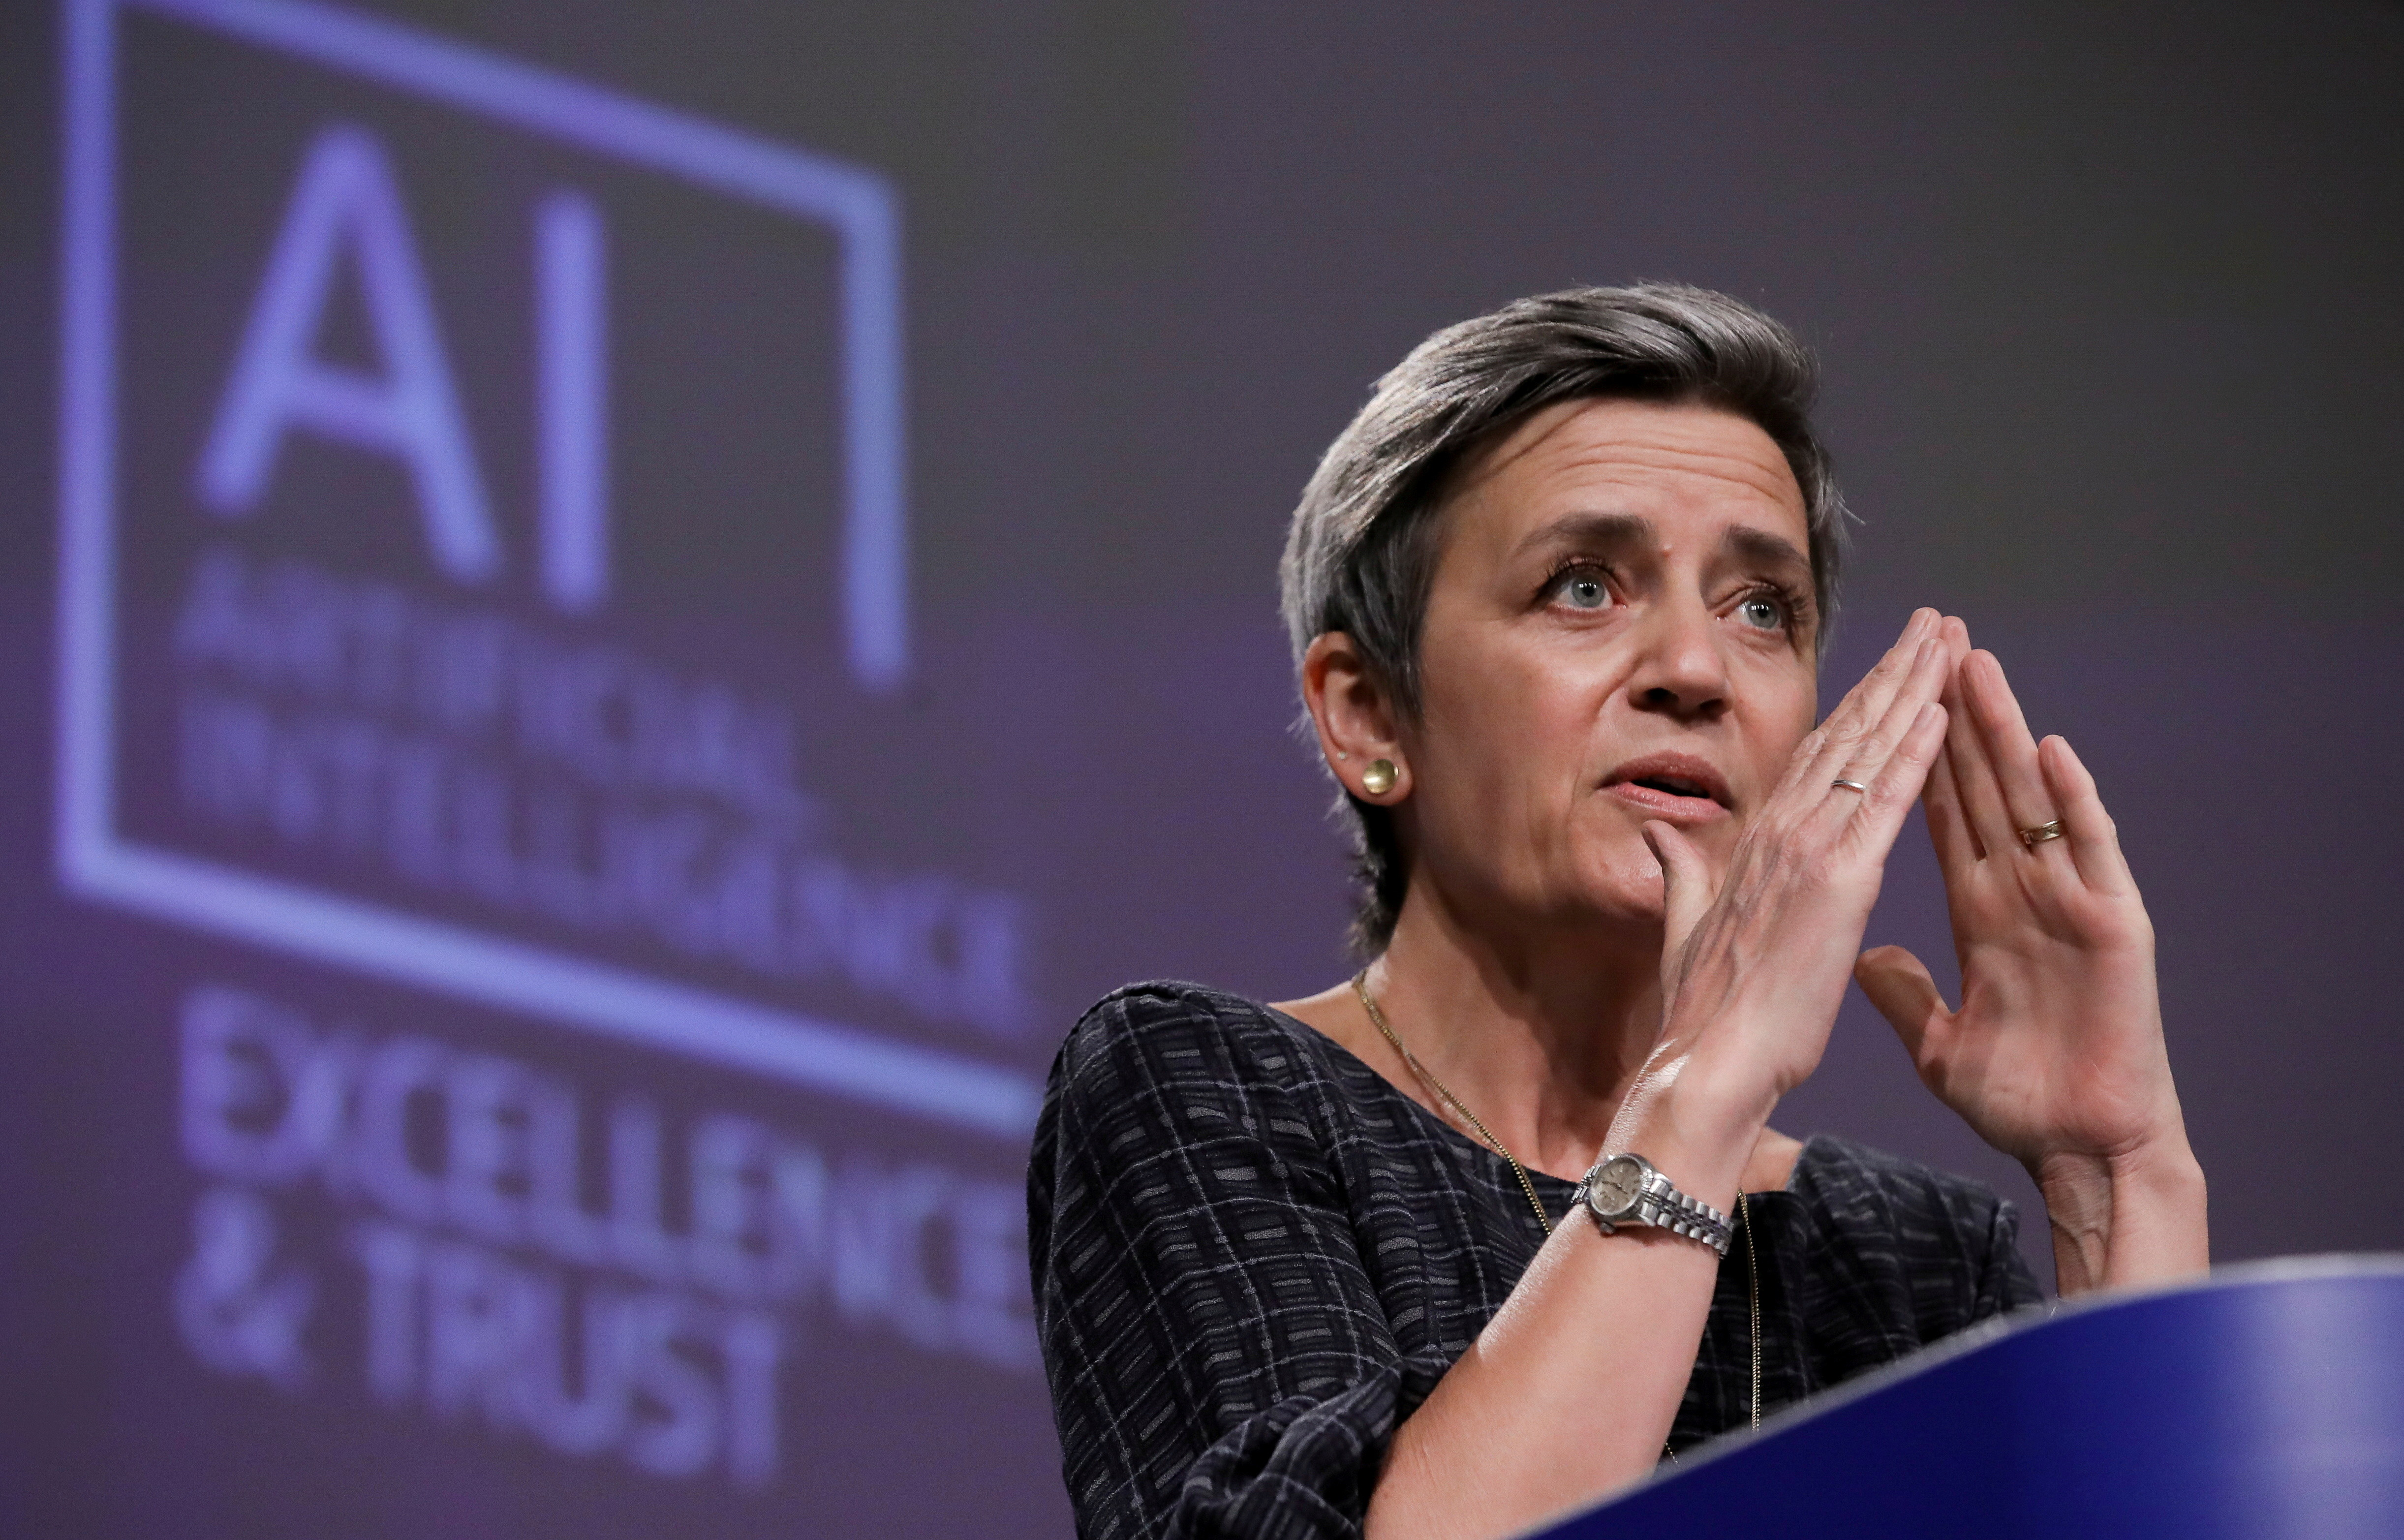 European Executive Vice-President Margrethe Vestager speaks at a media conference on the EU approach to Artificial Intelligence following a weekly meeting of EU Commission in Brussels, Belgium, April 21, 2021. Olivier Hoslet/Pool via REUTERS - RC2B0N9IYPRY